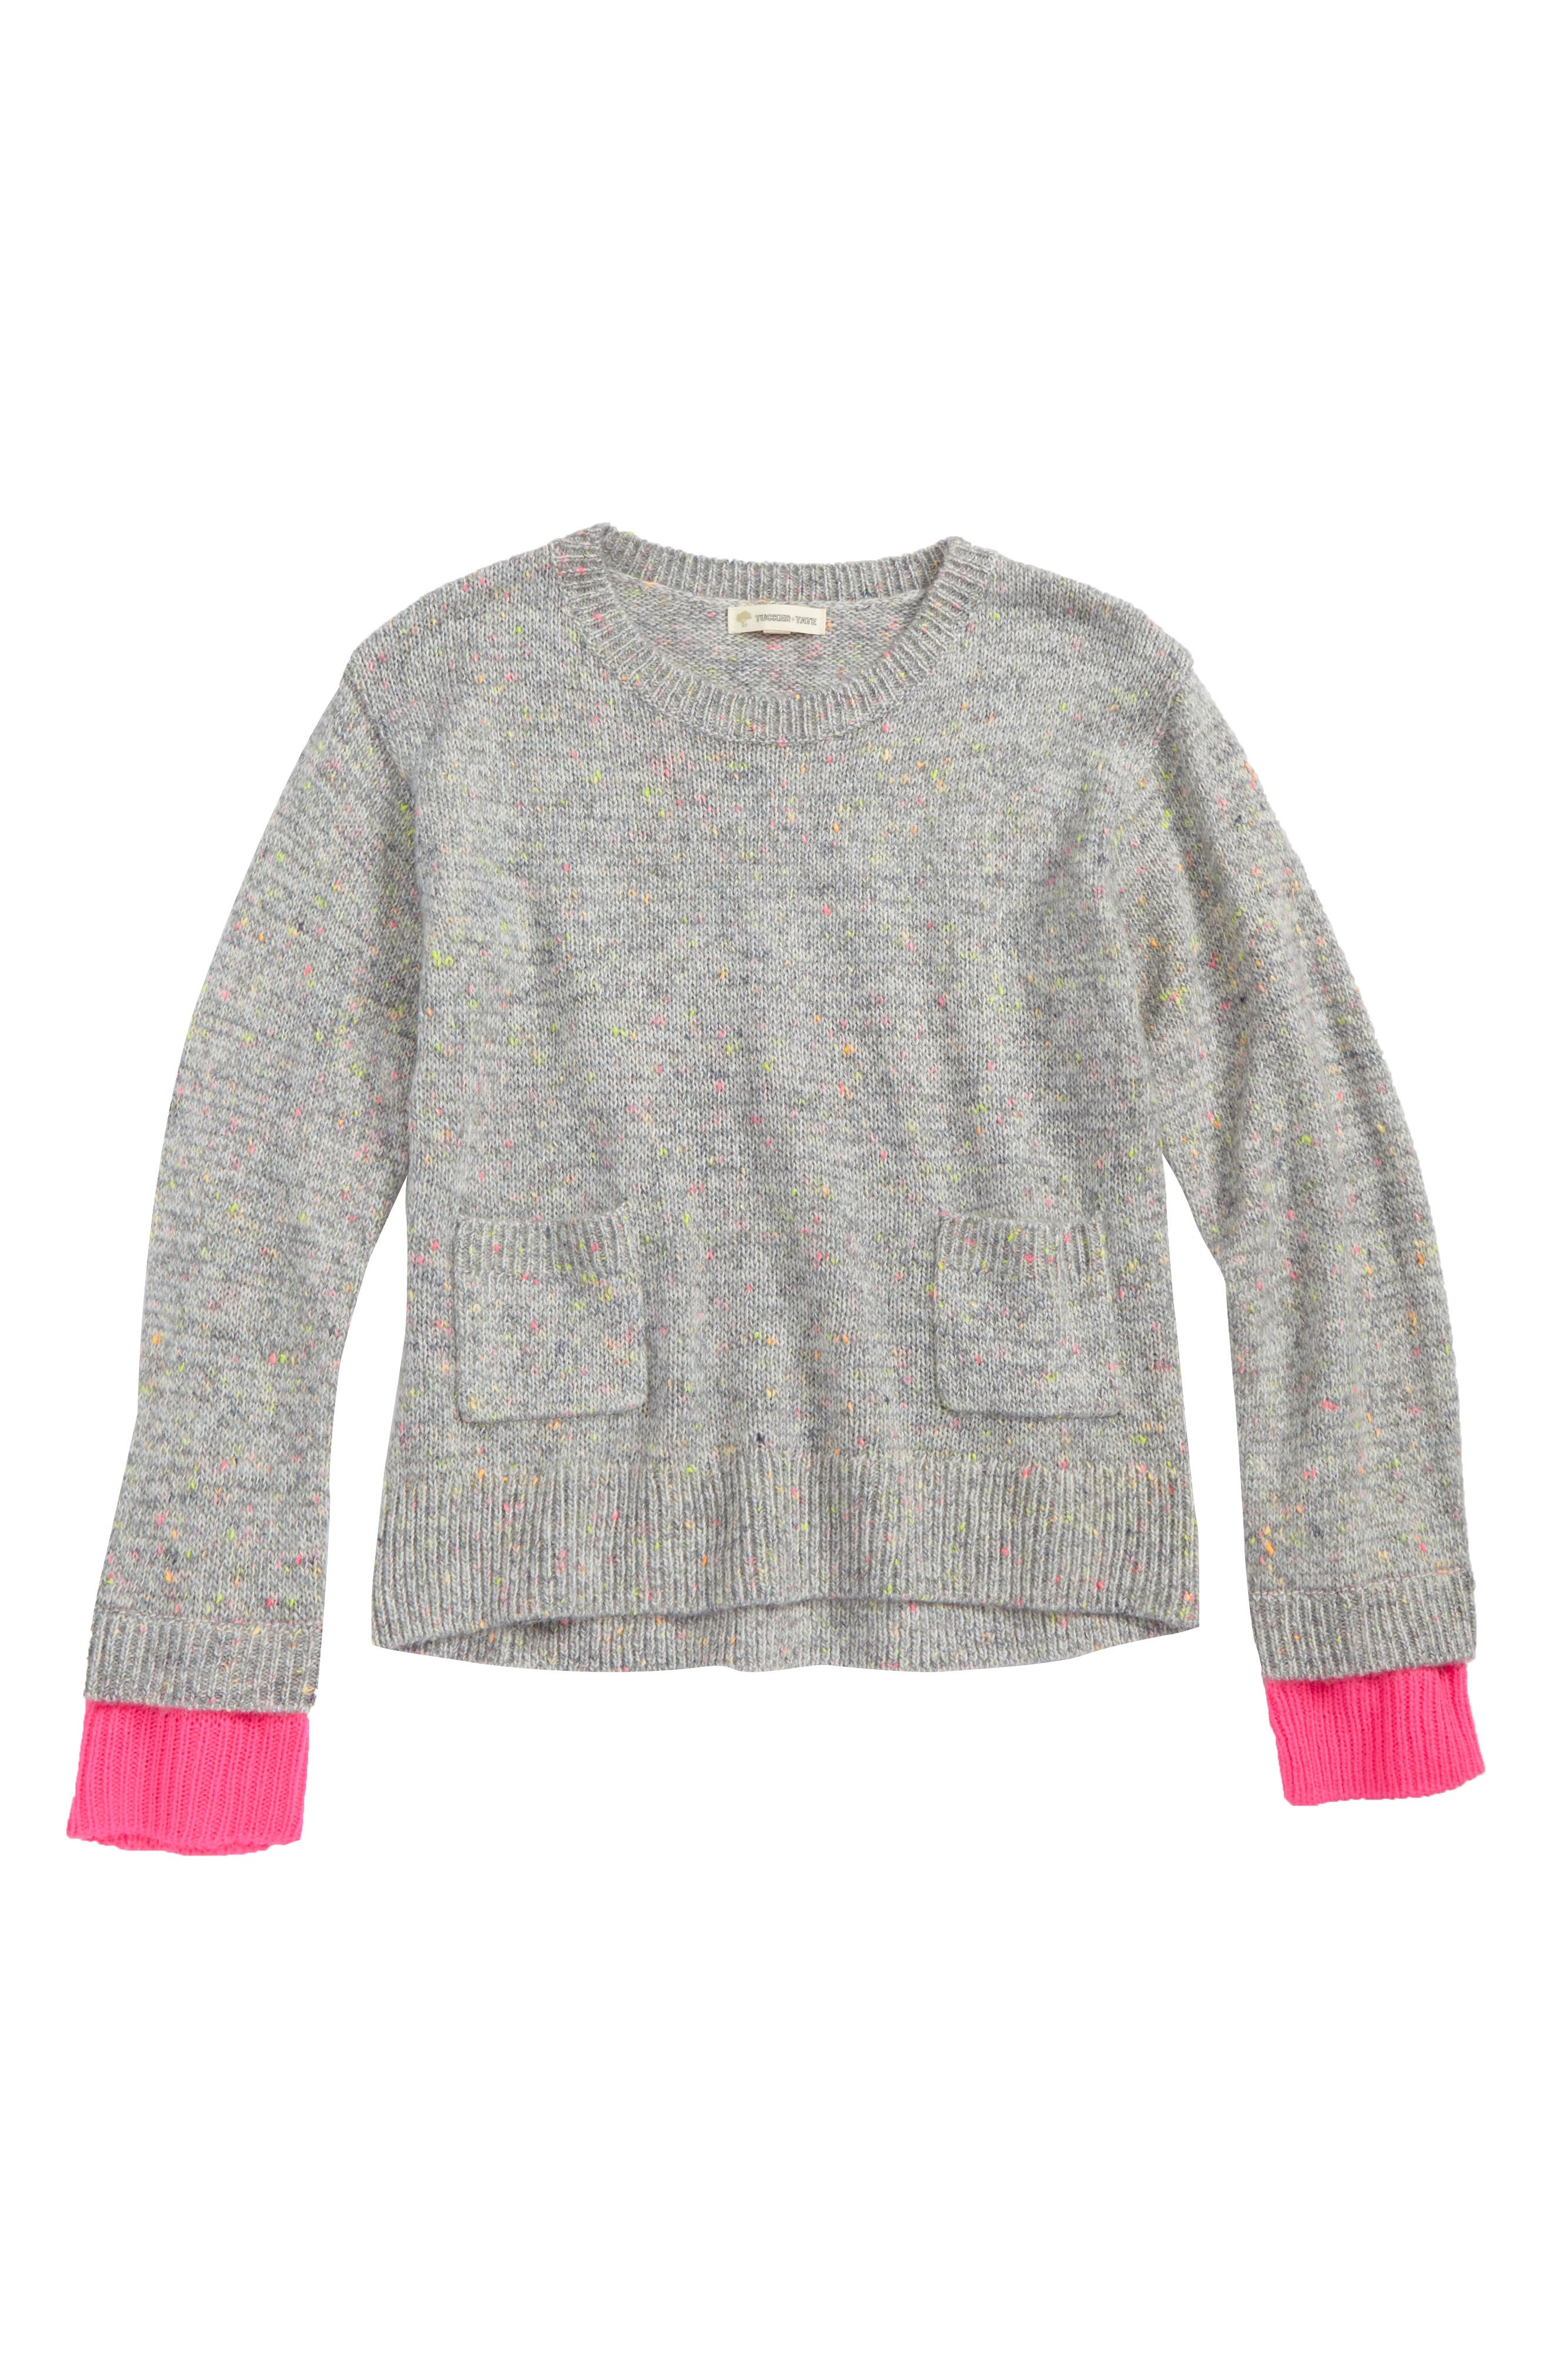 Neon Knit Sweater,                         Main,                         color, Grey Heather